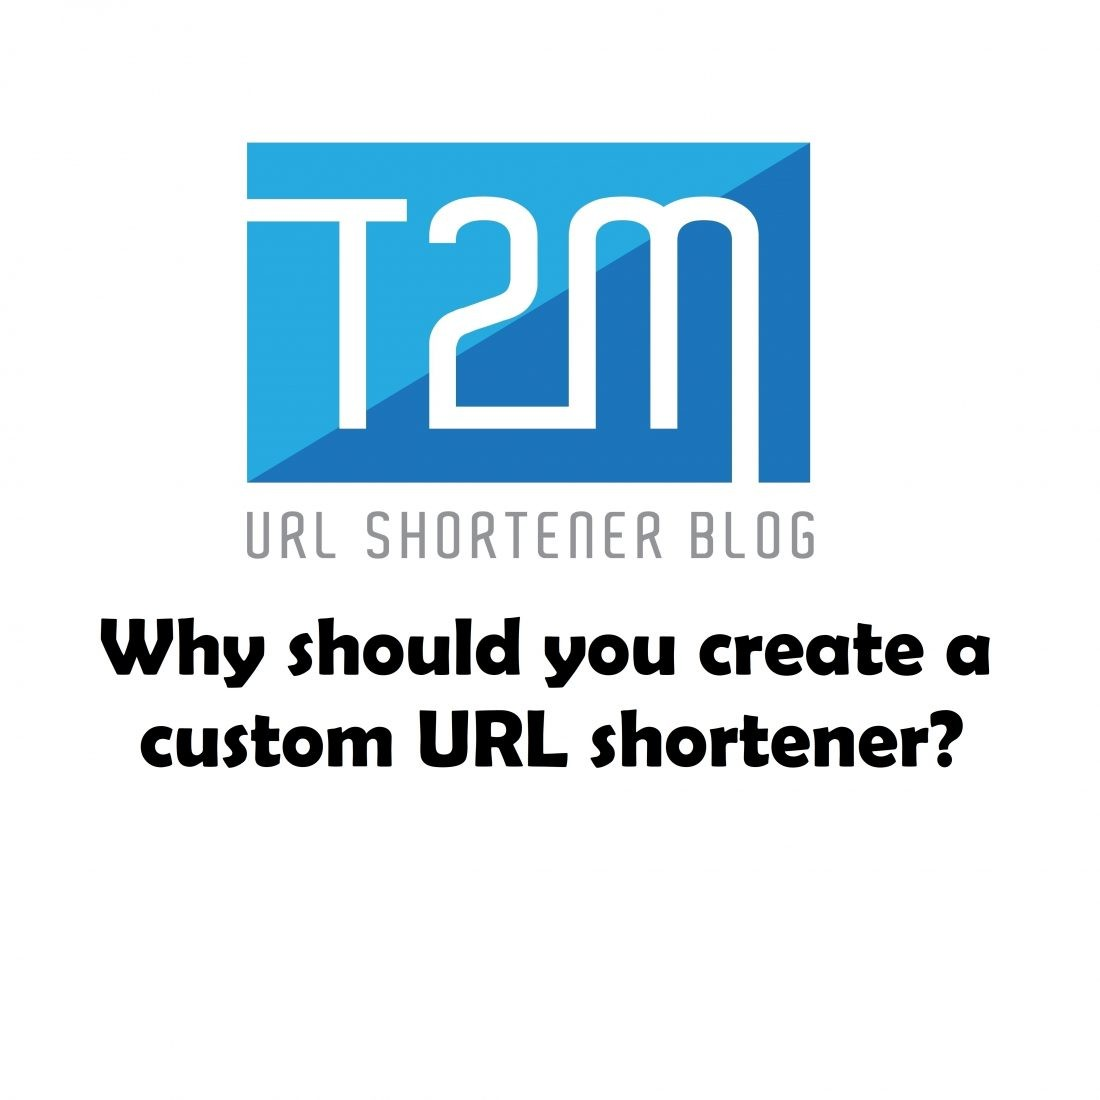 Why should you create a custom URL shortener?